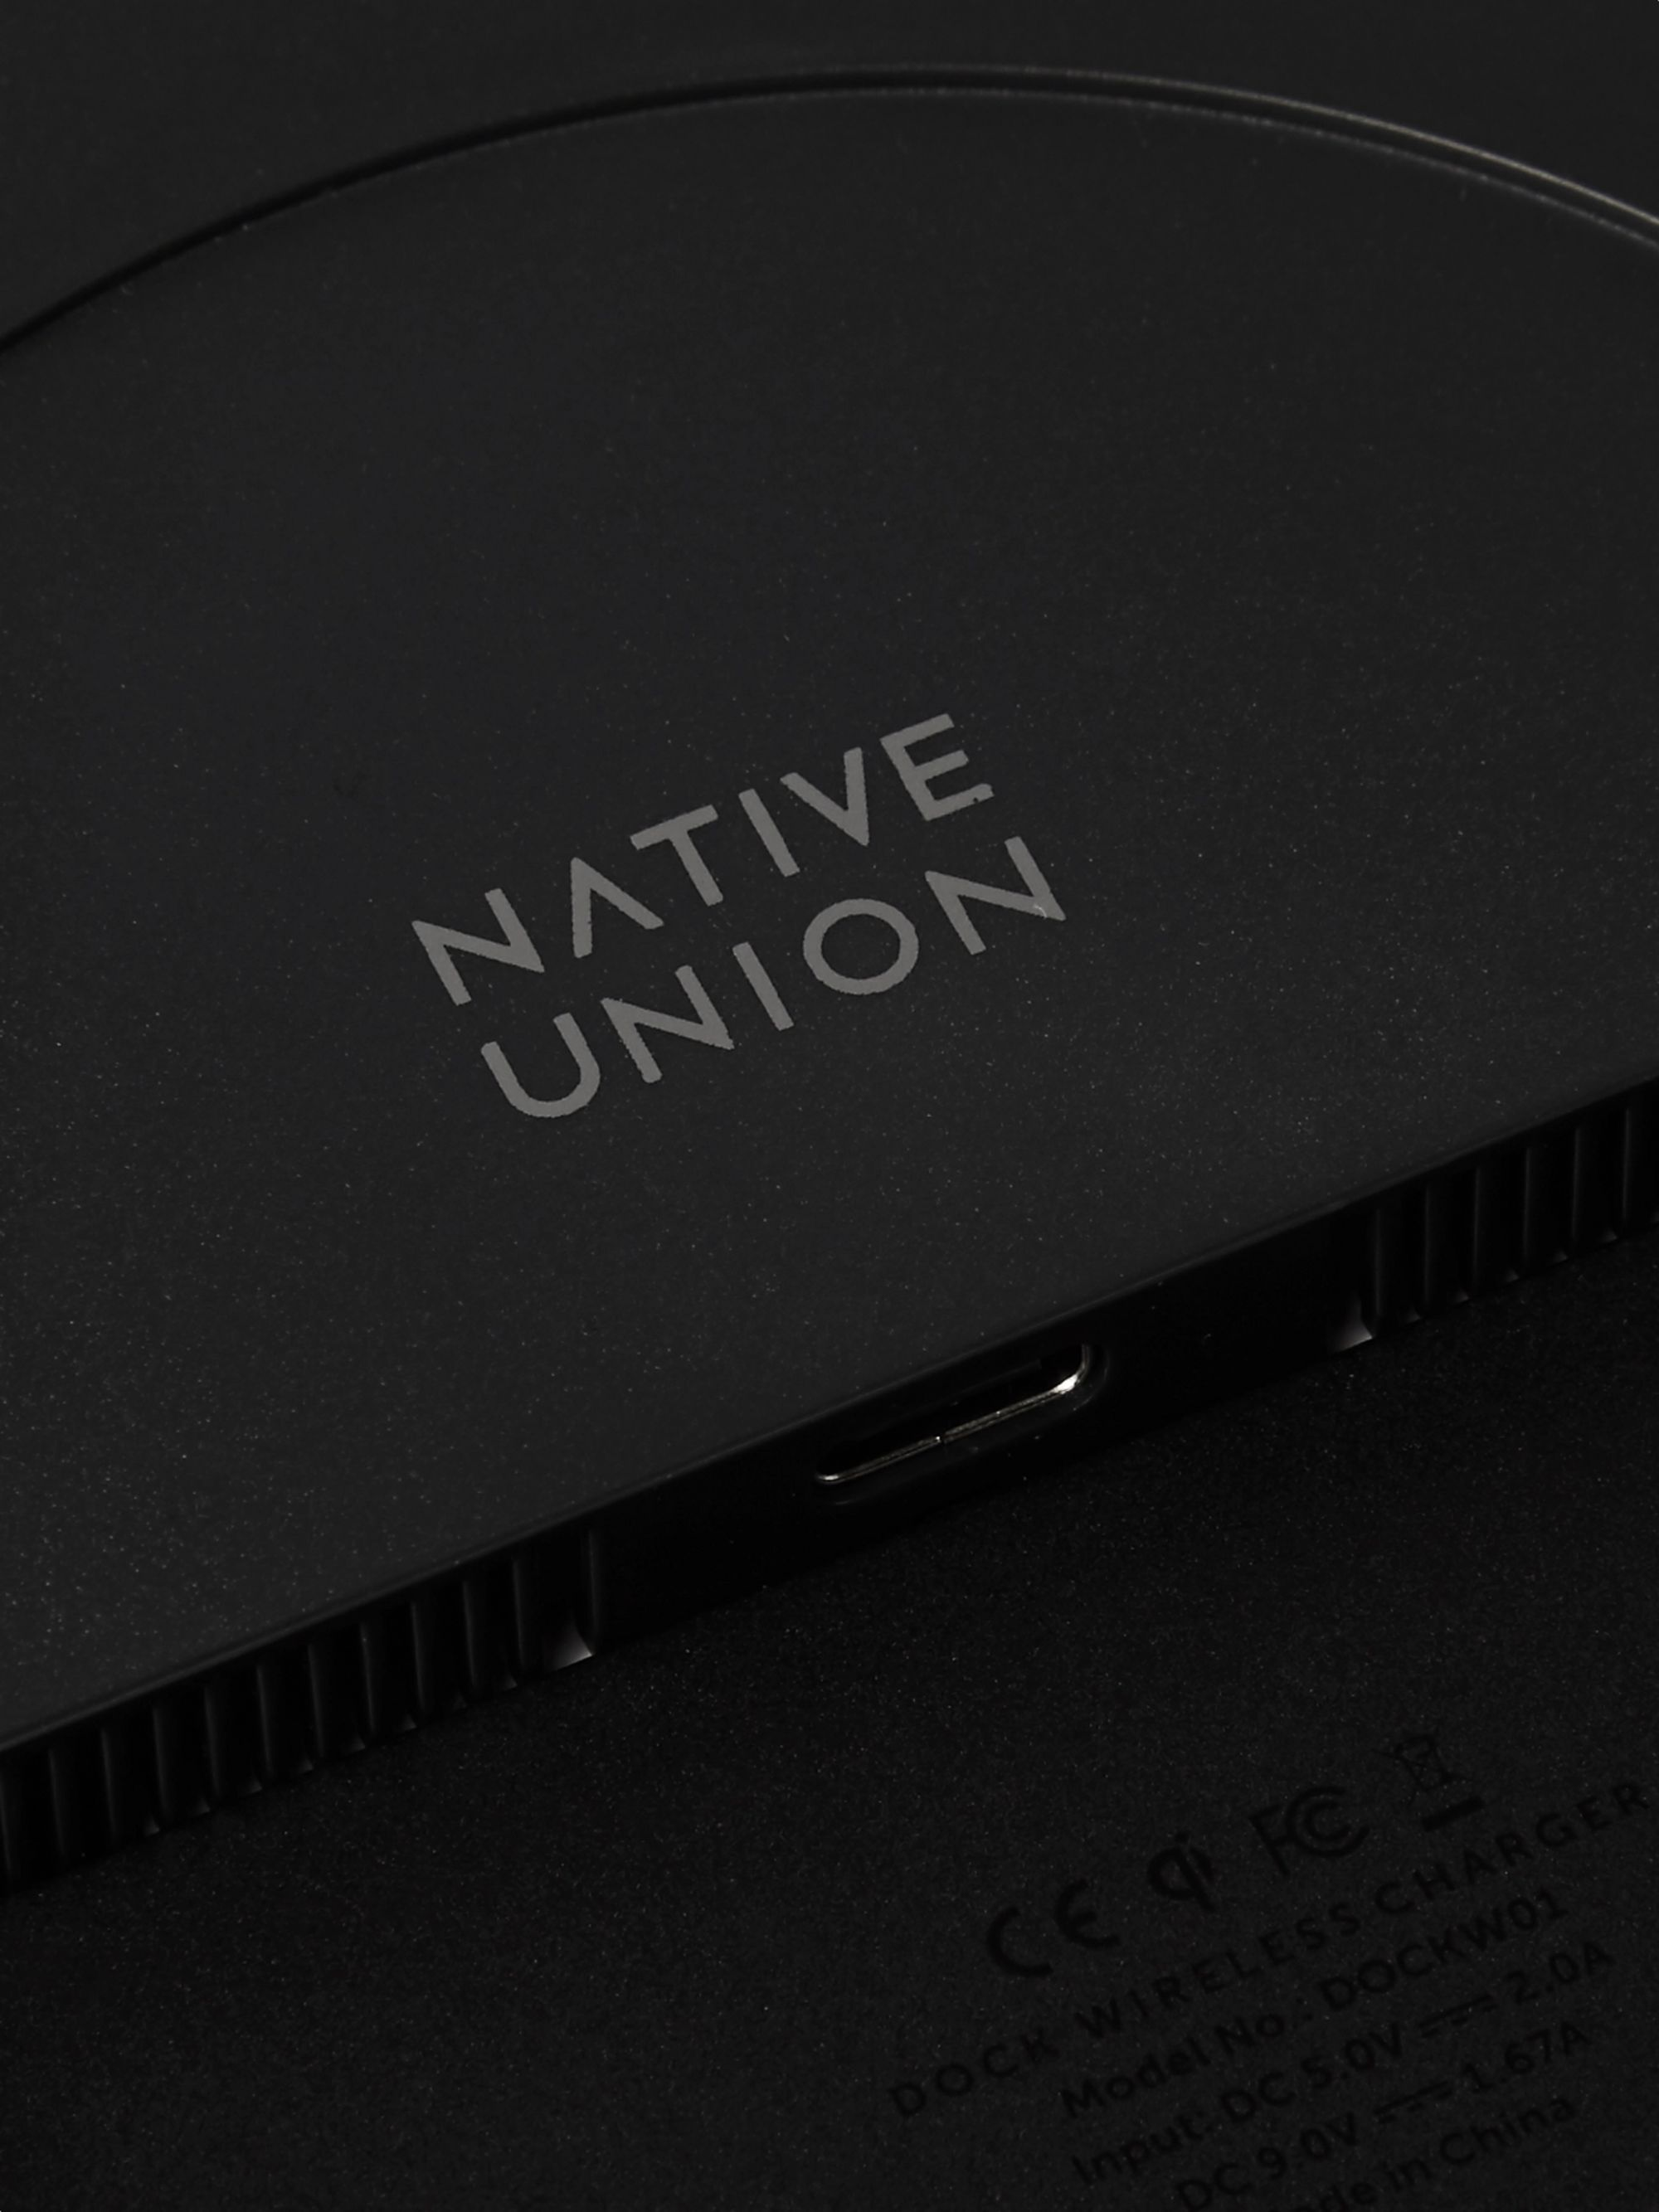 Native Union Jesmonite Terrazzo Dock Wireless Charger